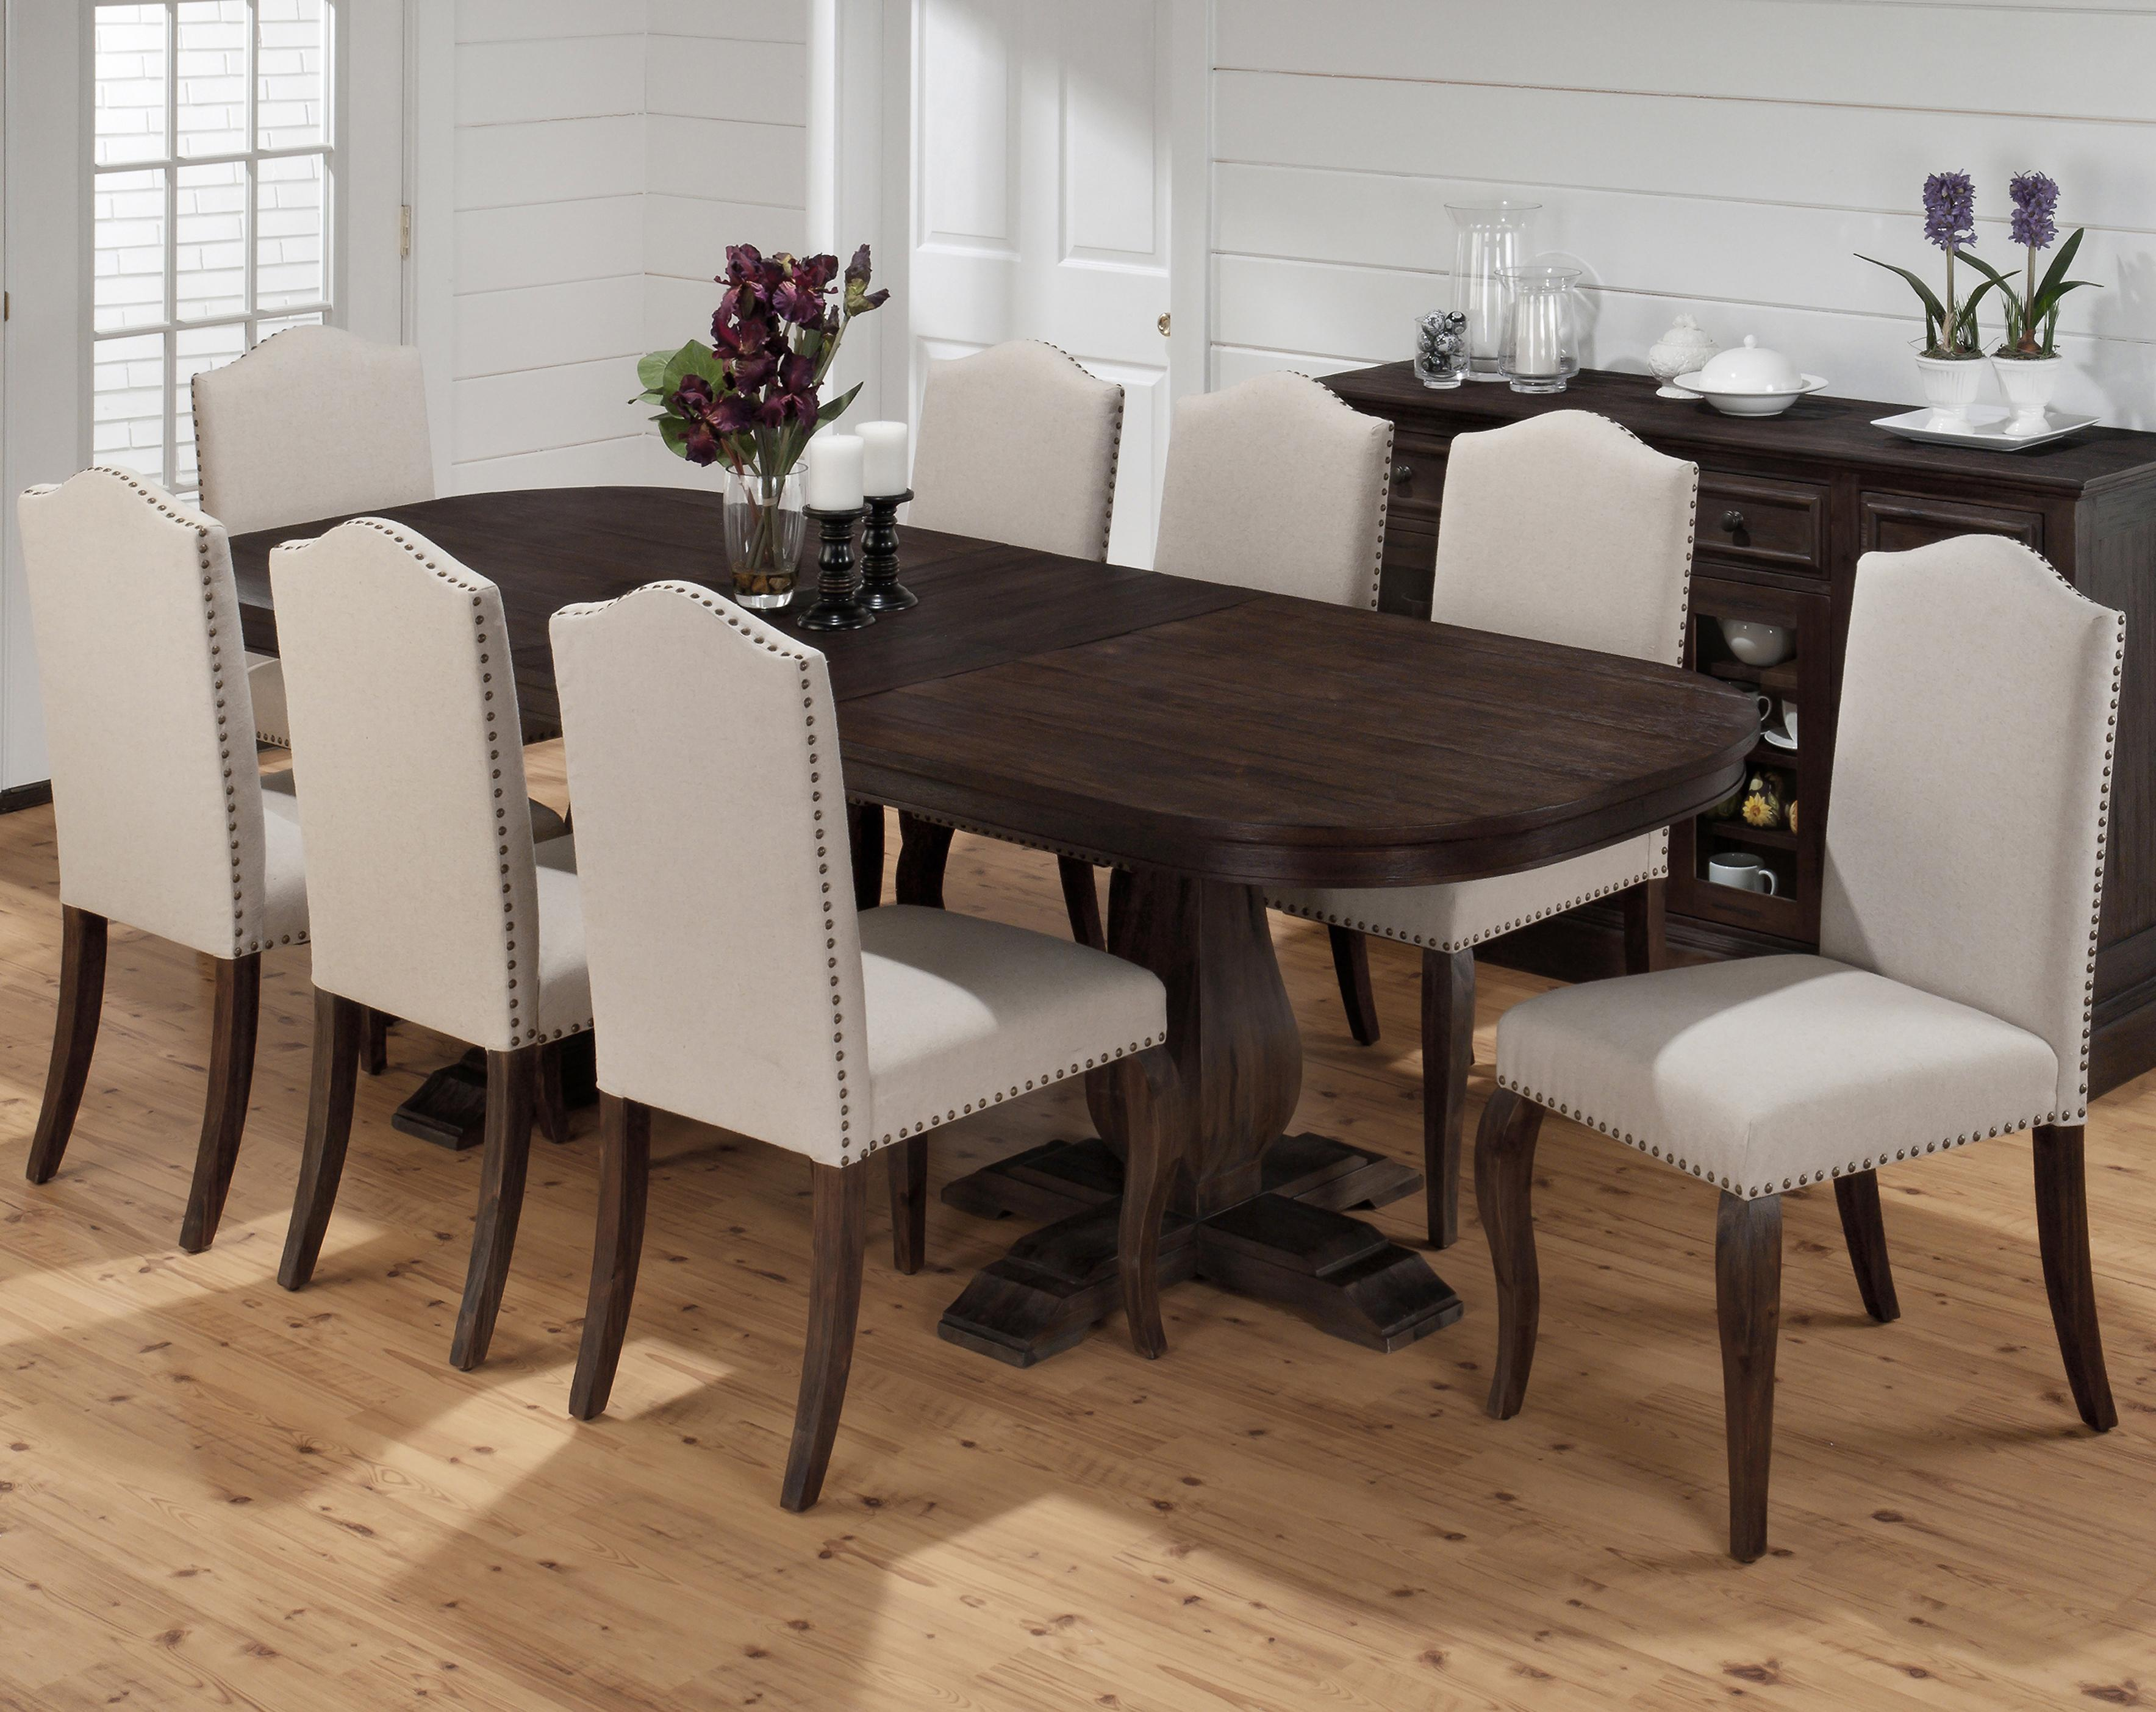 Dining Table and Upholstered Chair Set